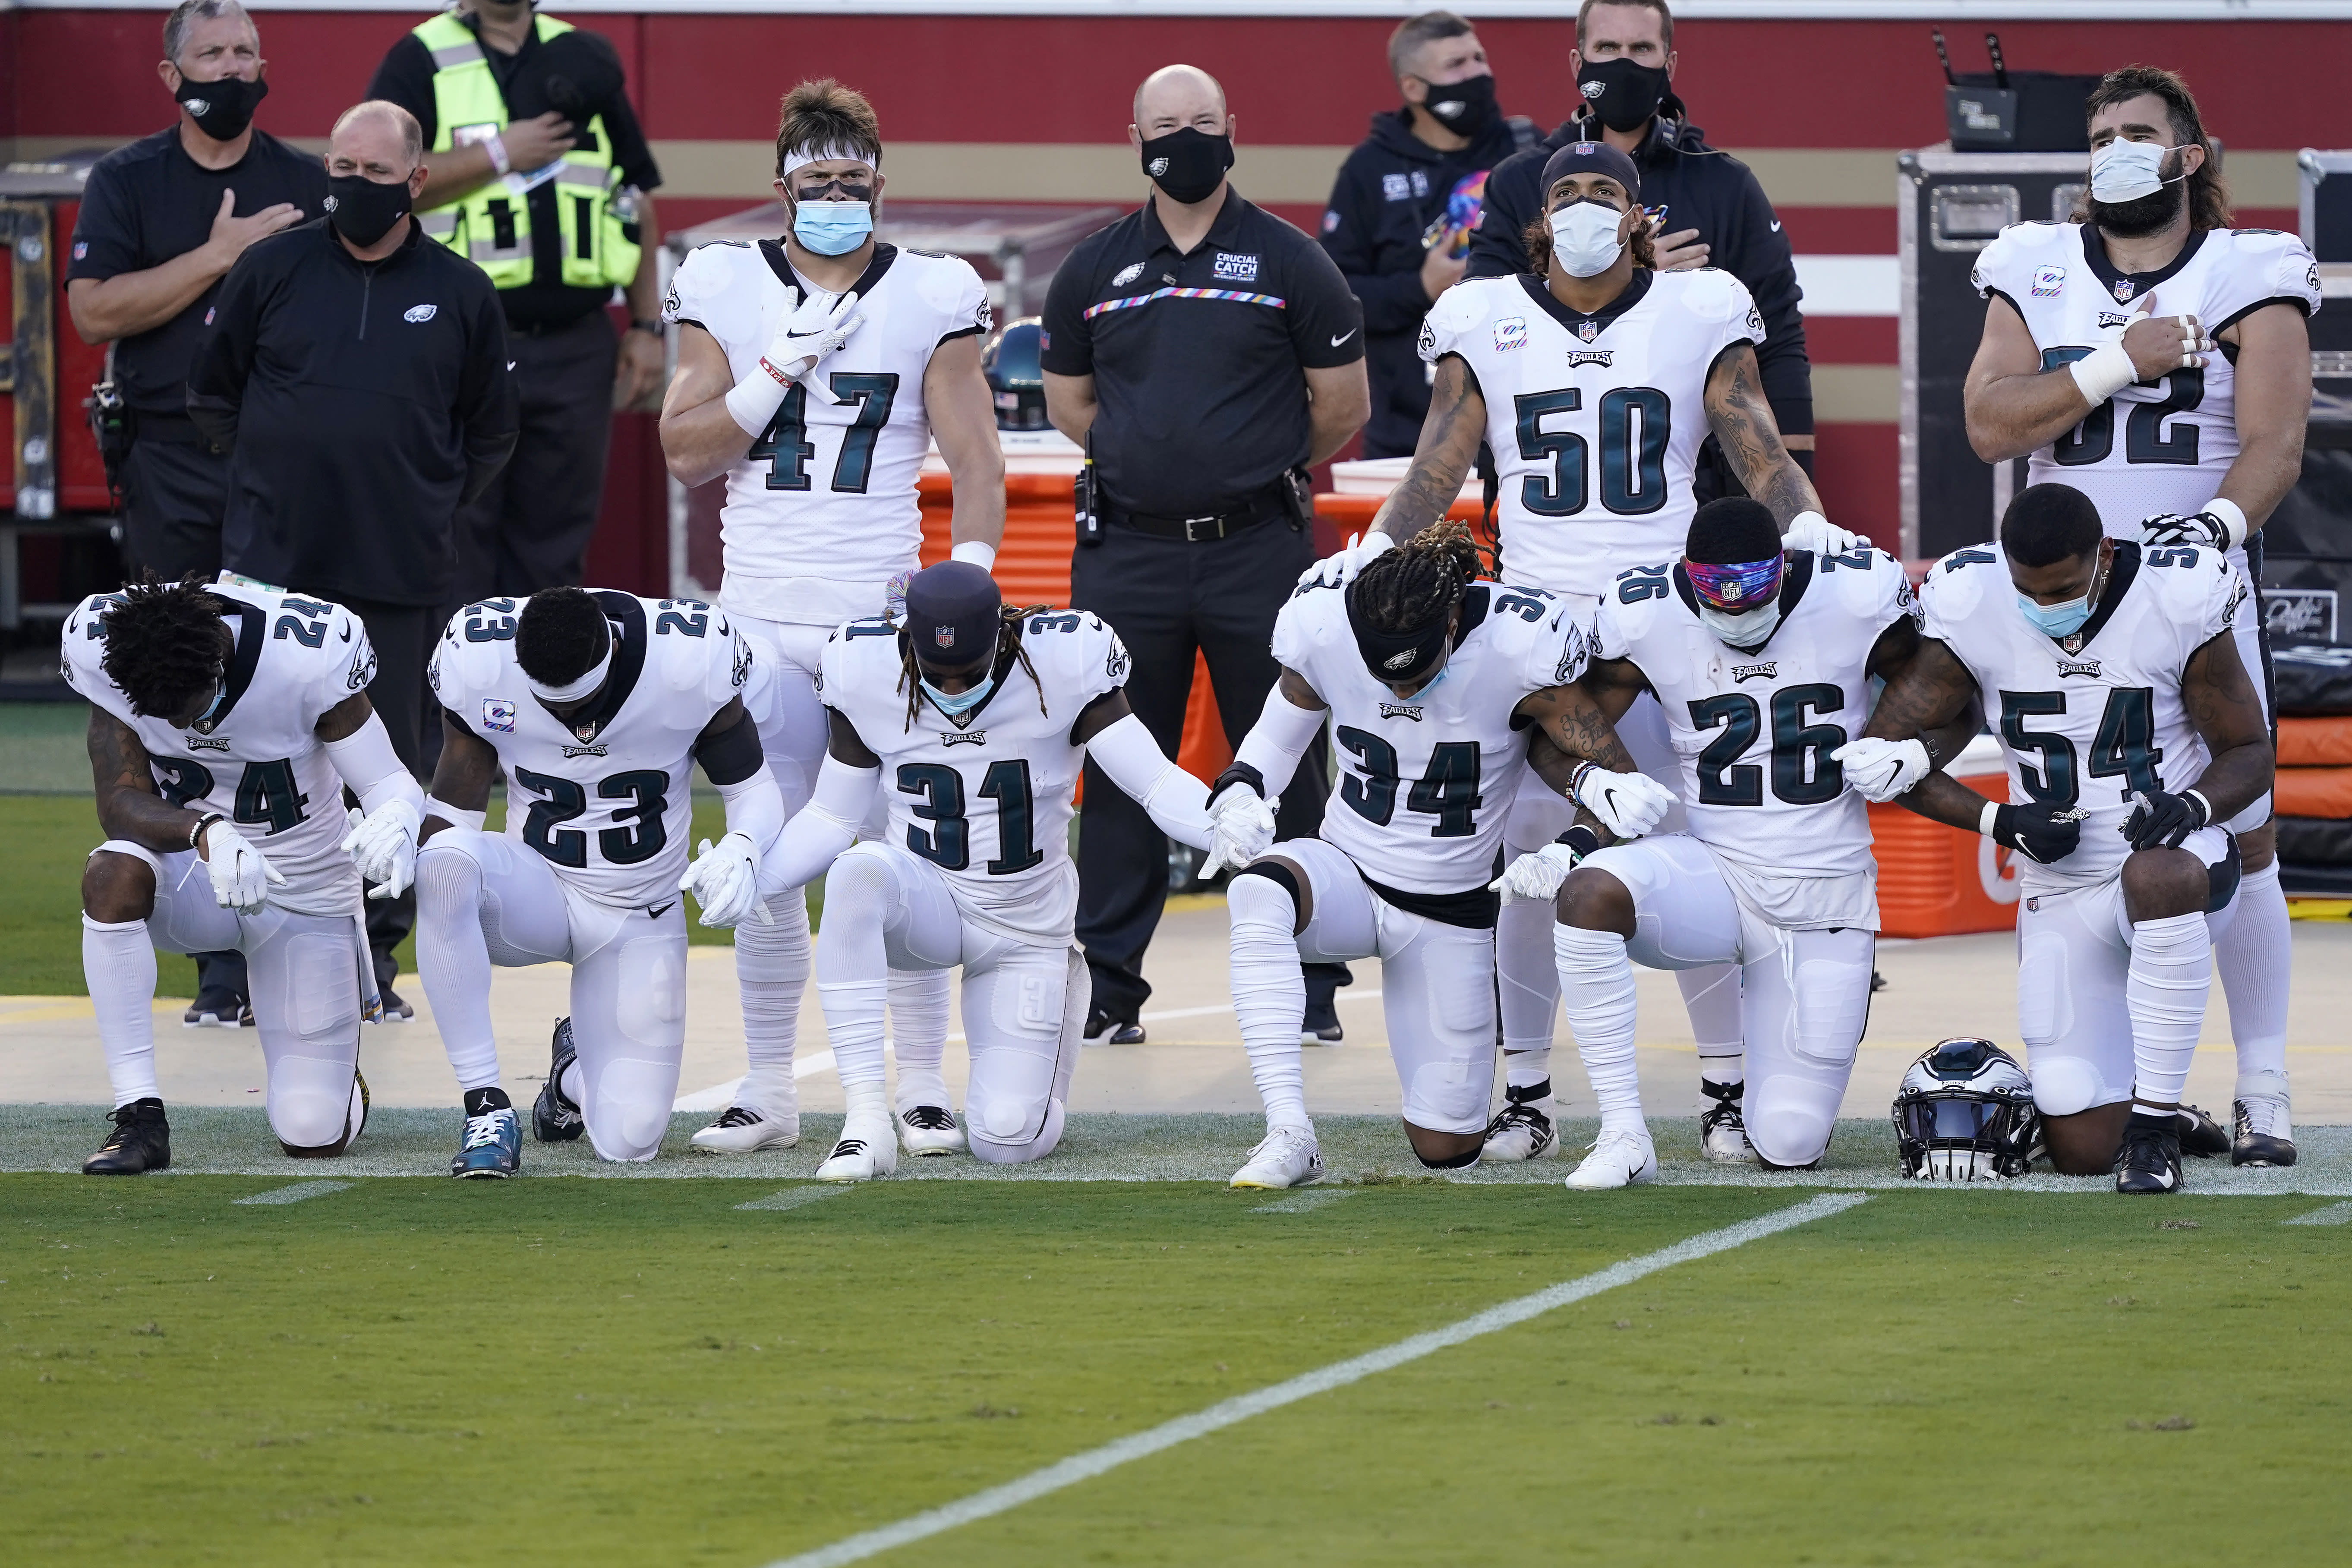 Philadelphia Eagles' Darius Slay, from bottom left, kneels with Rodney McLeod, Nickell Robey-Coleman, Cre'von LeBlanc, Miles Sanders and Shaun Bradley during the national anthem before an NFL football game in Santa Clara, Calif., Sunday, Oct. 4, 2020. (AP Photo/Tony Avelar)